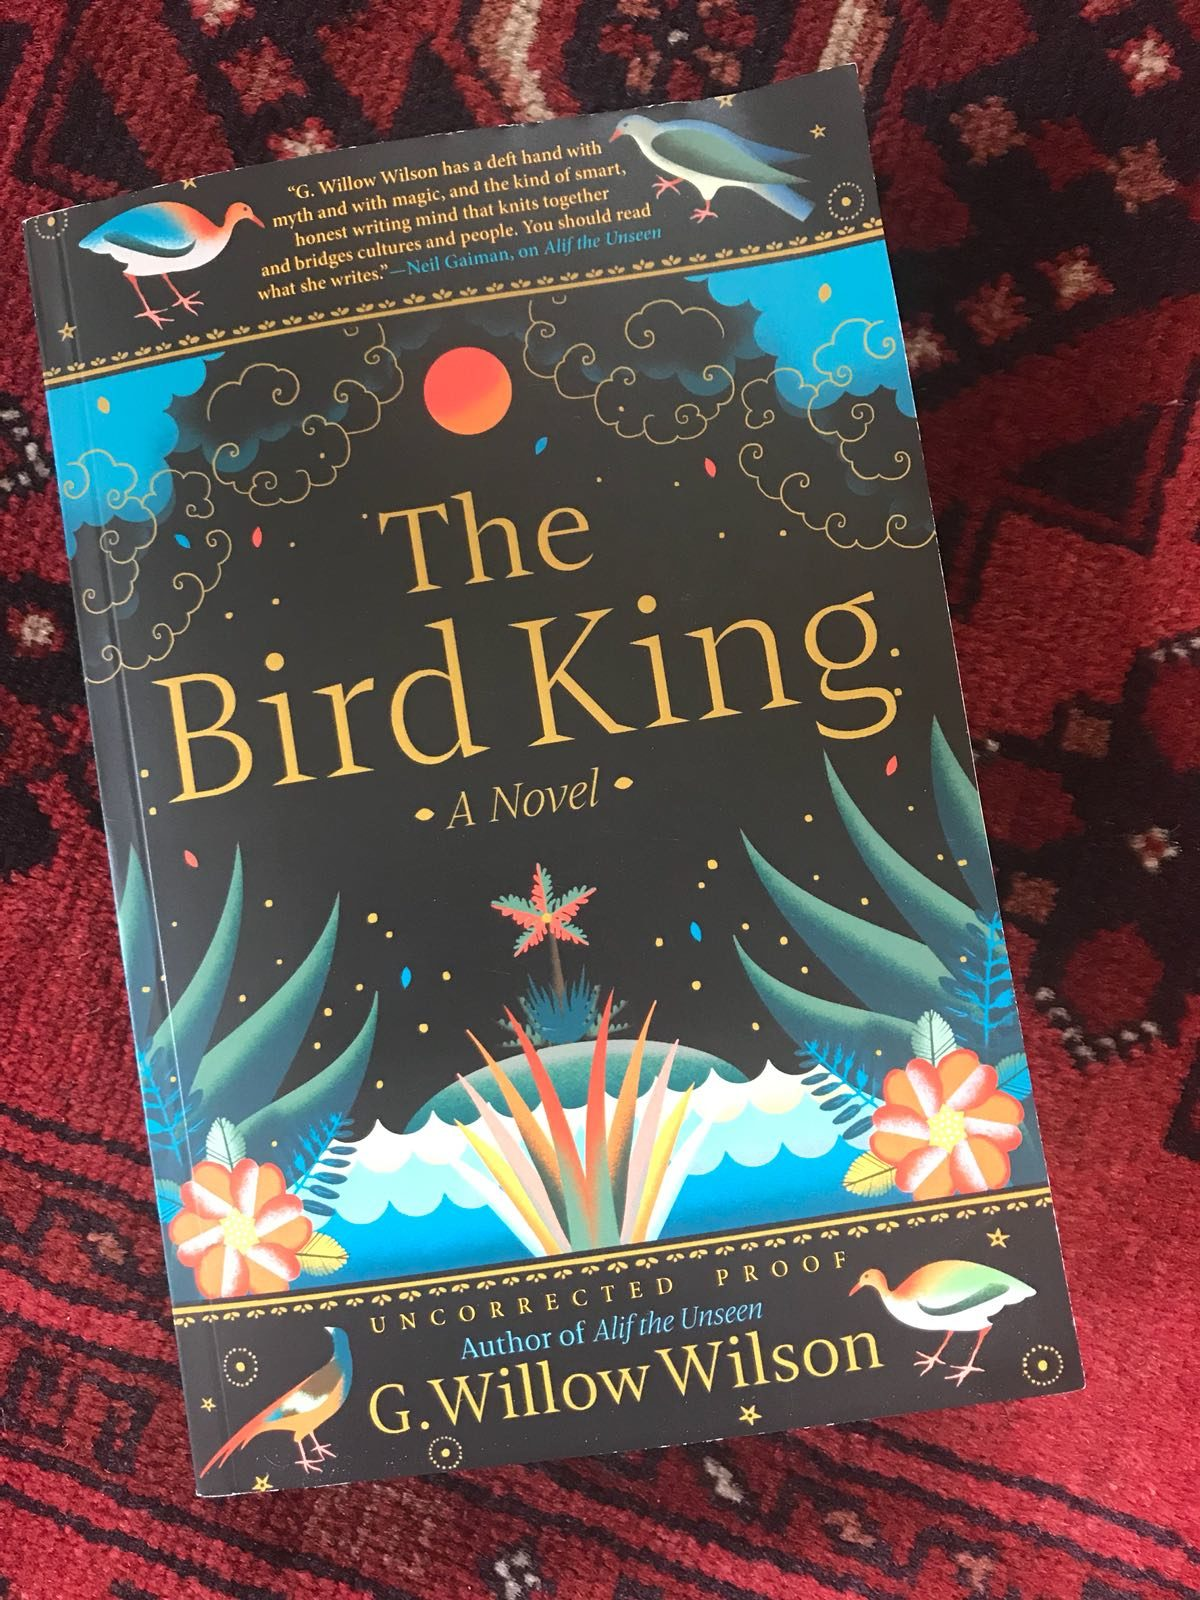 The Bird King by G. Willow Wilson – pre-order now